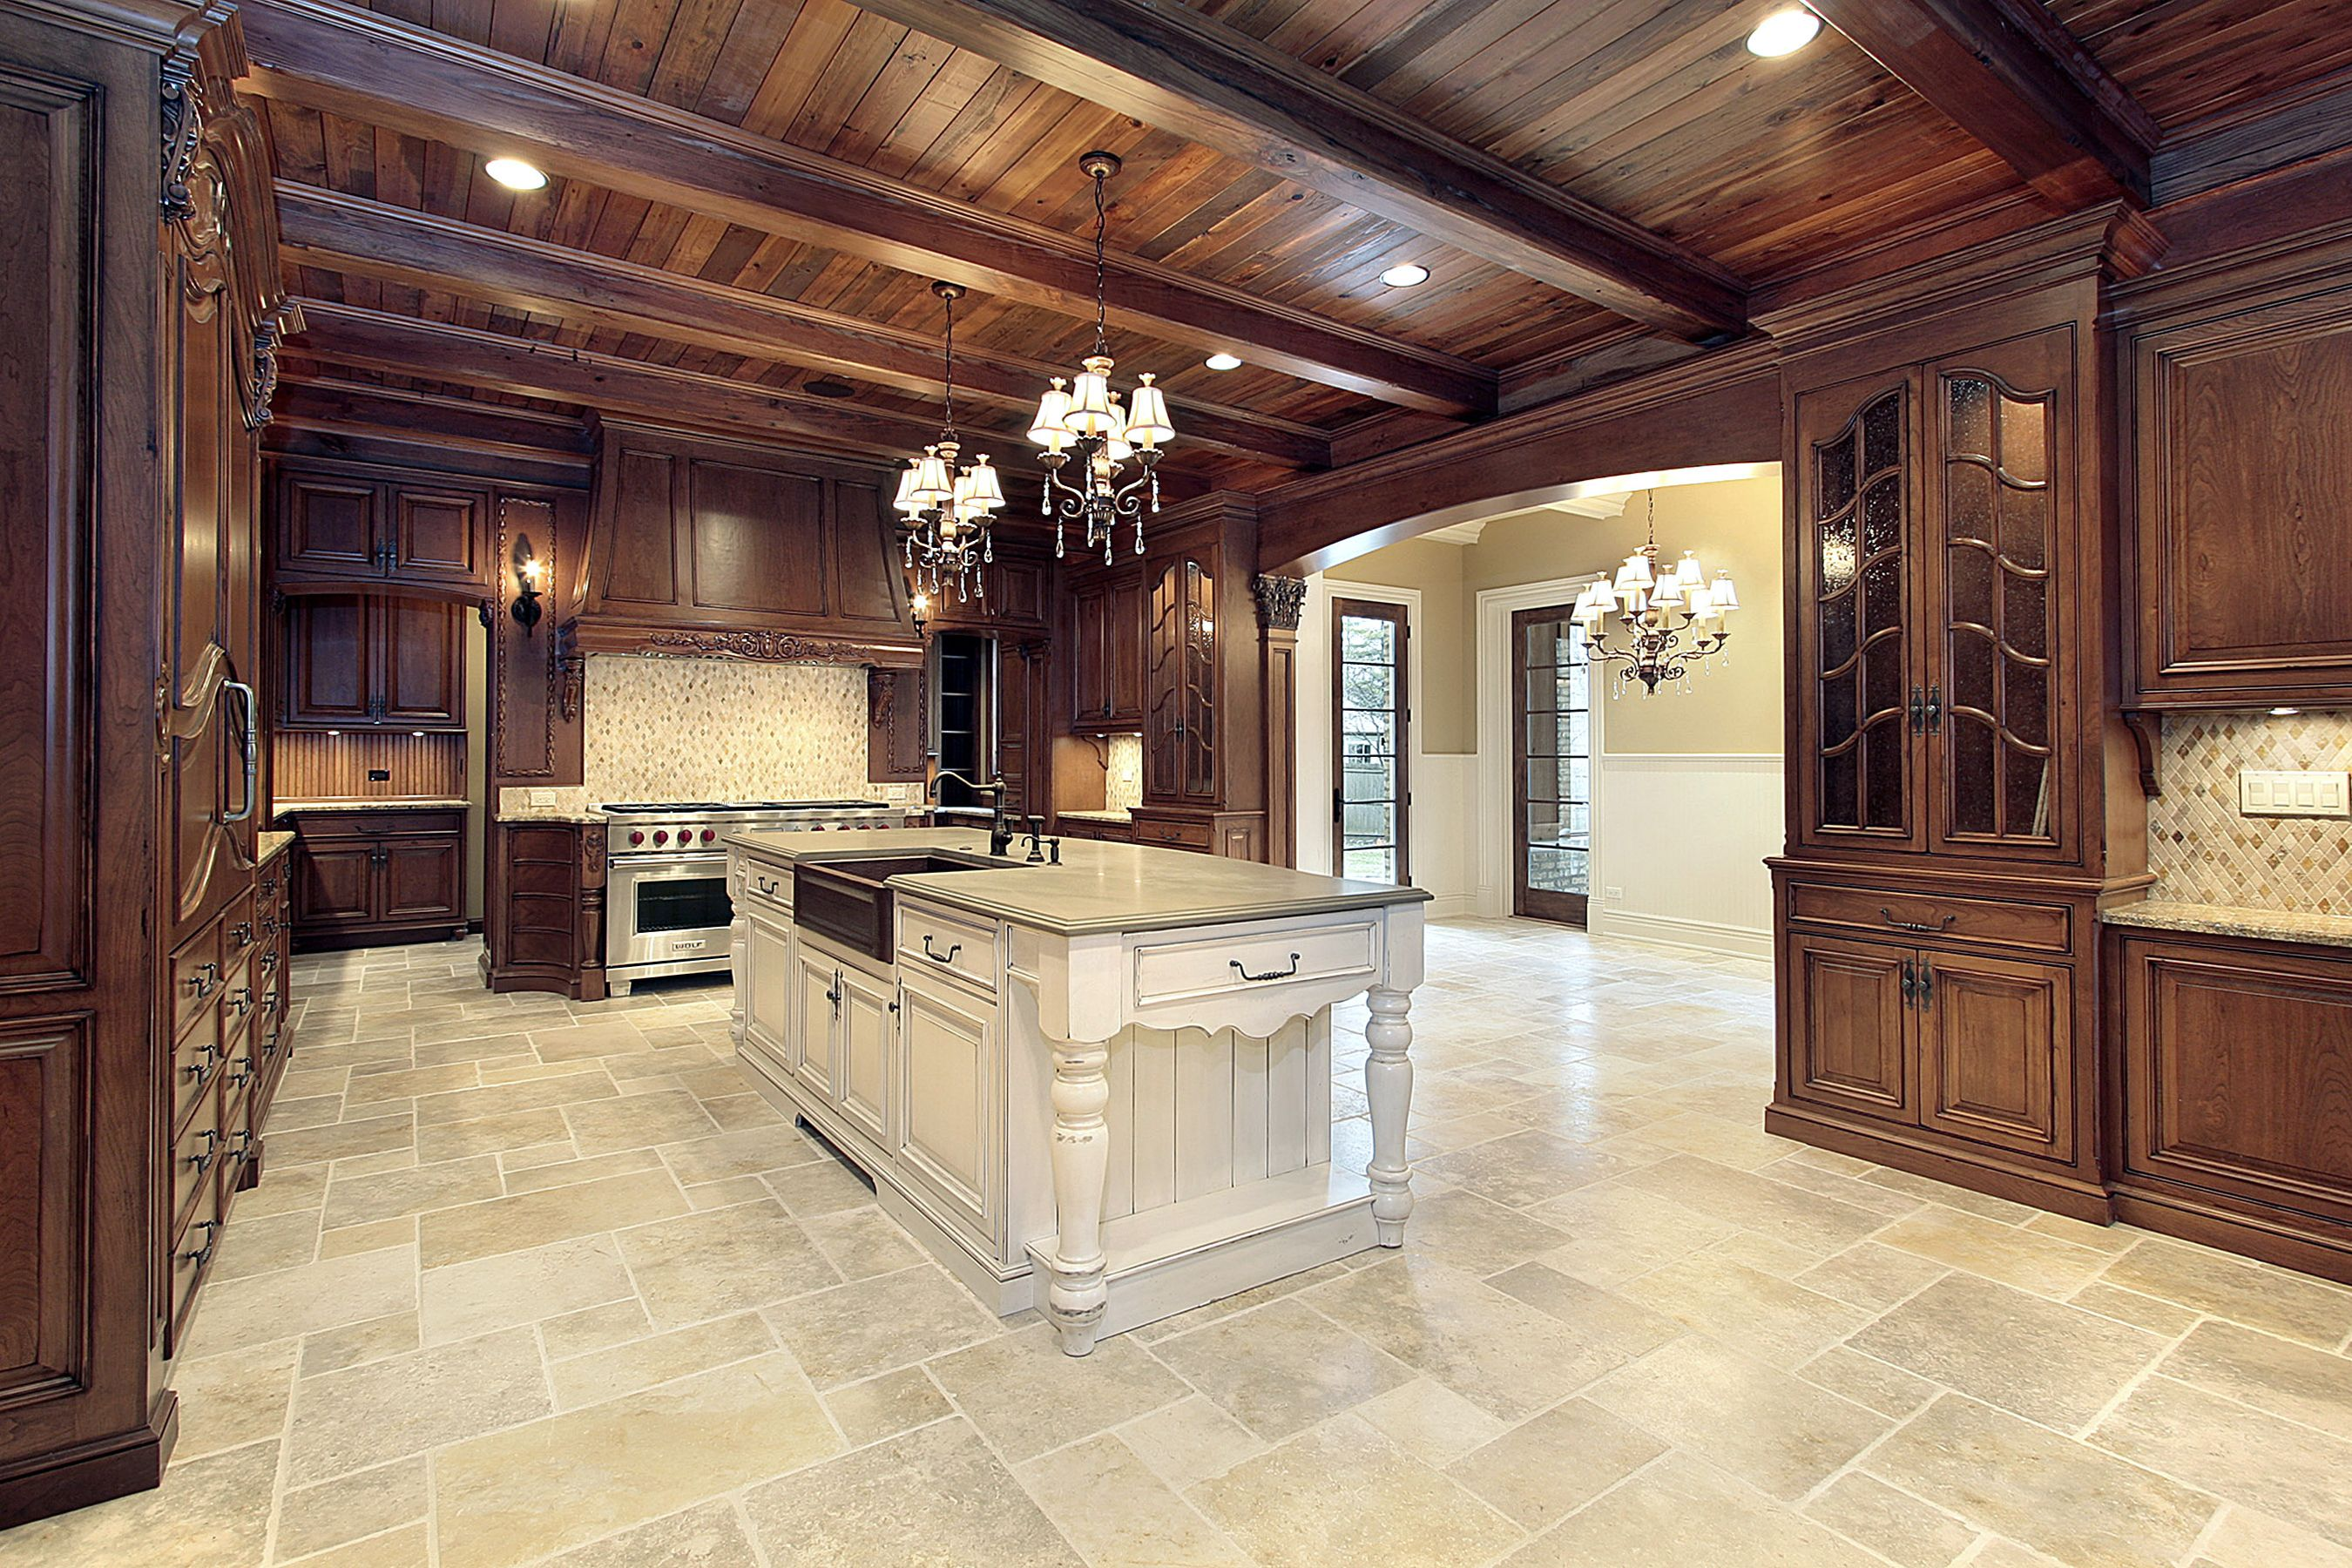 Floor Coverings For Kitchens Vero Beach Flooring Residential Commercial Flooring Coverings